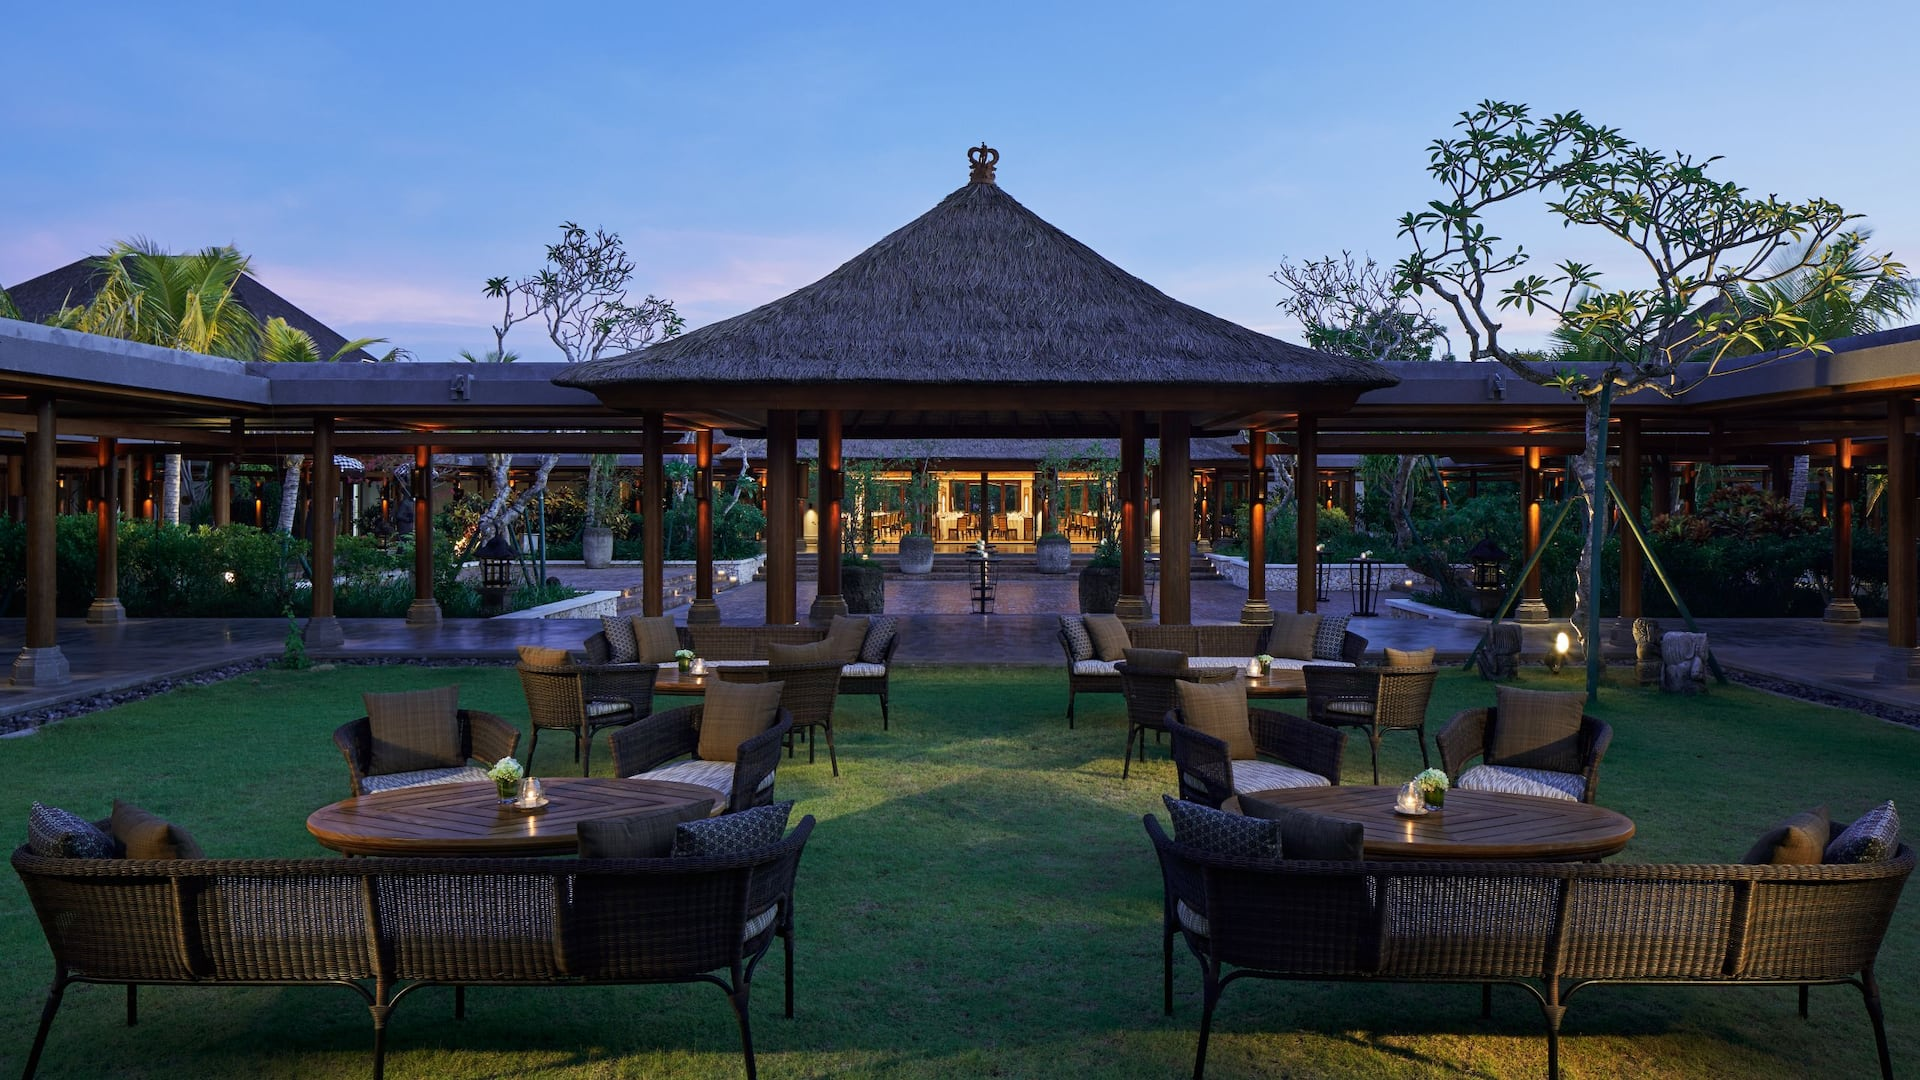 Meeting Rooms, Conference and Event Venues The Hyatt Regency Bali